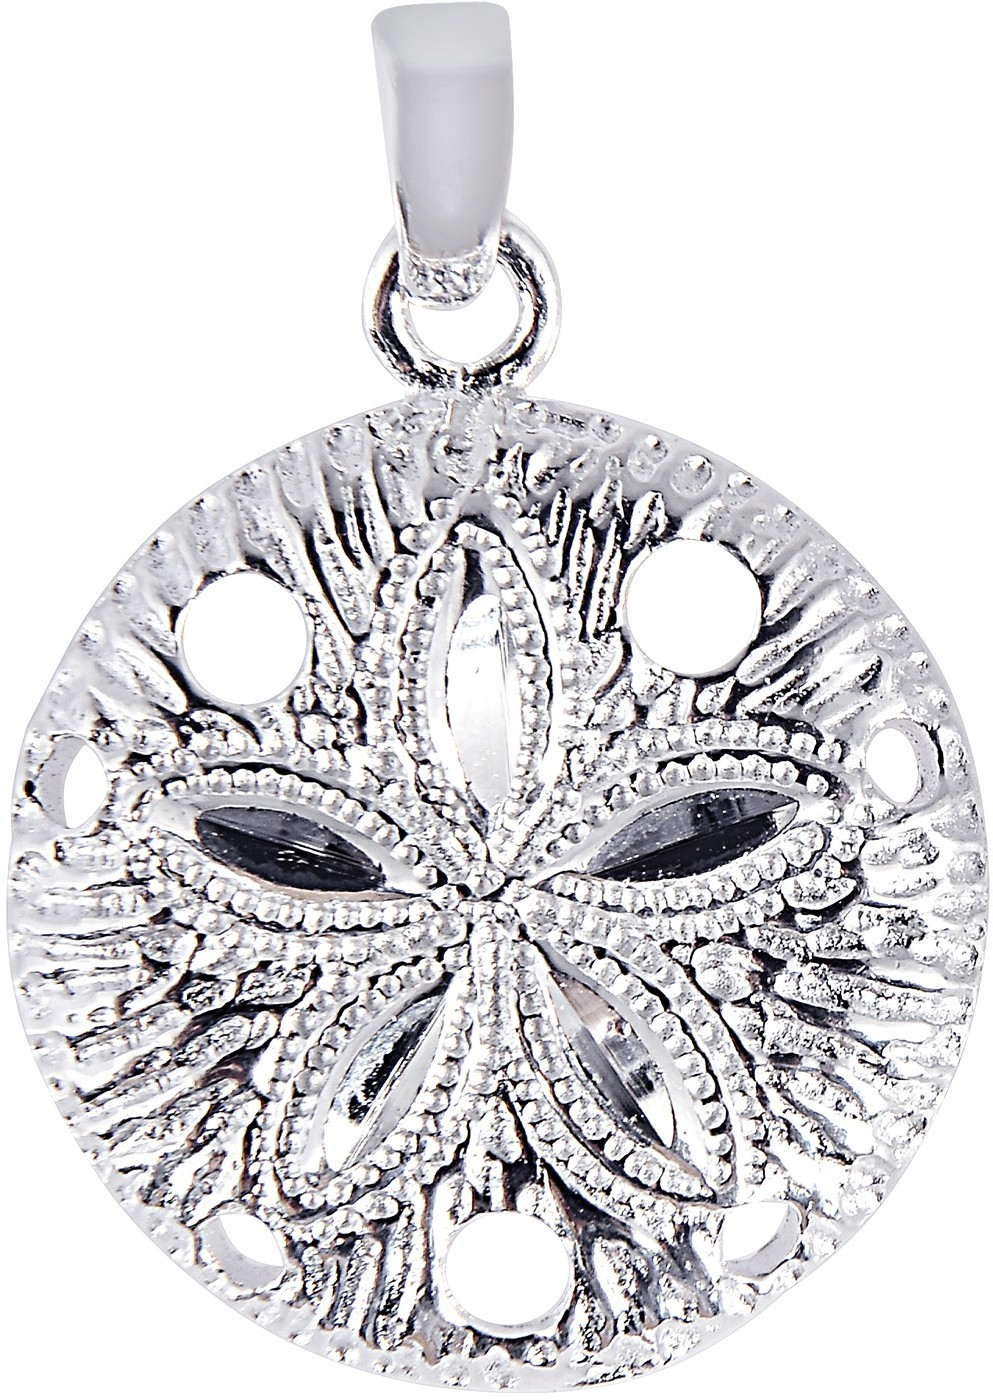 Silver Rhodium Plated Shiny Textured Sand Dollar Sea Life Pendant (BTAGCH132)